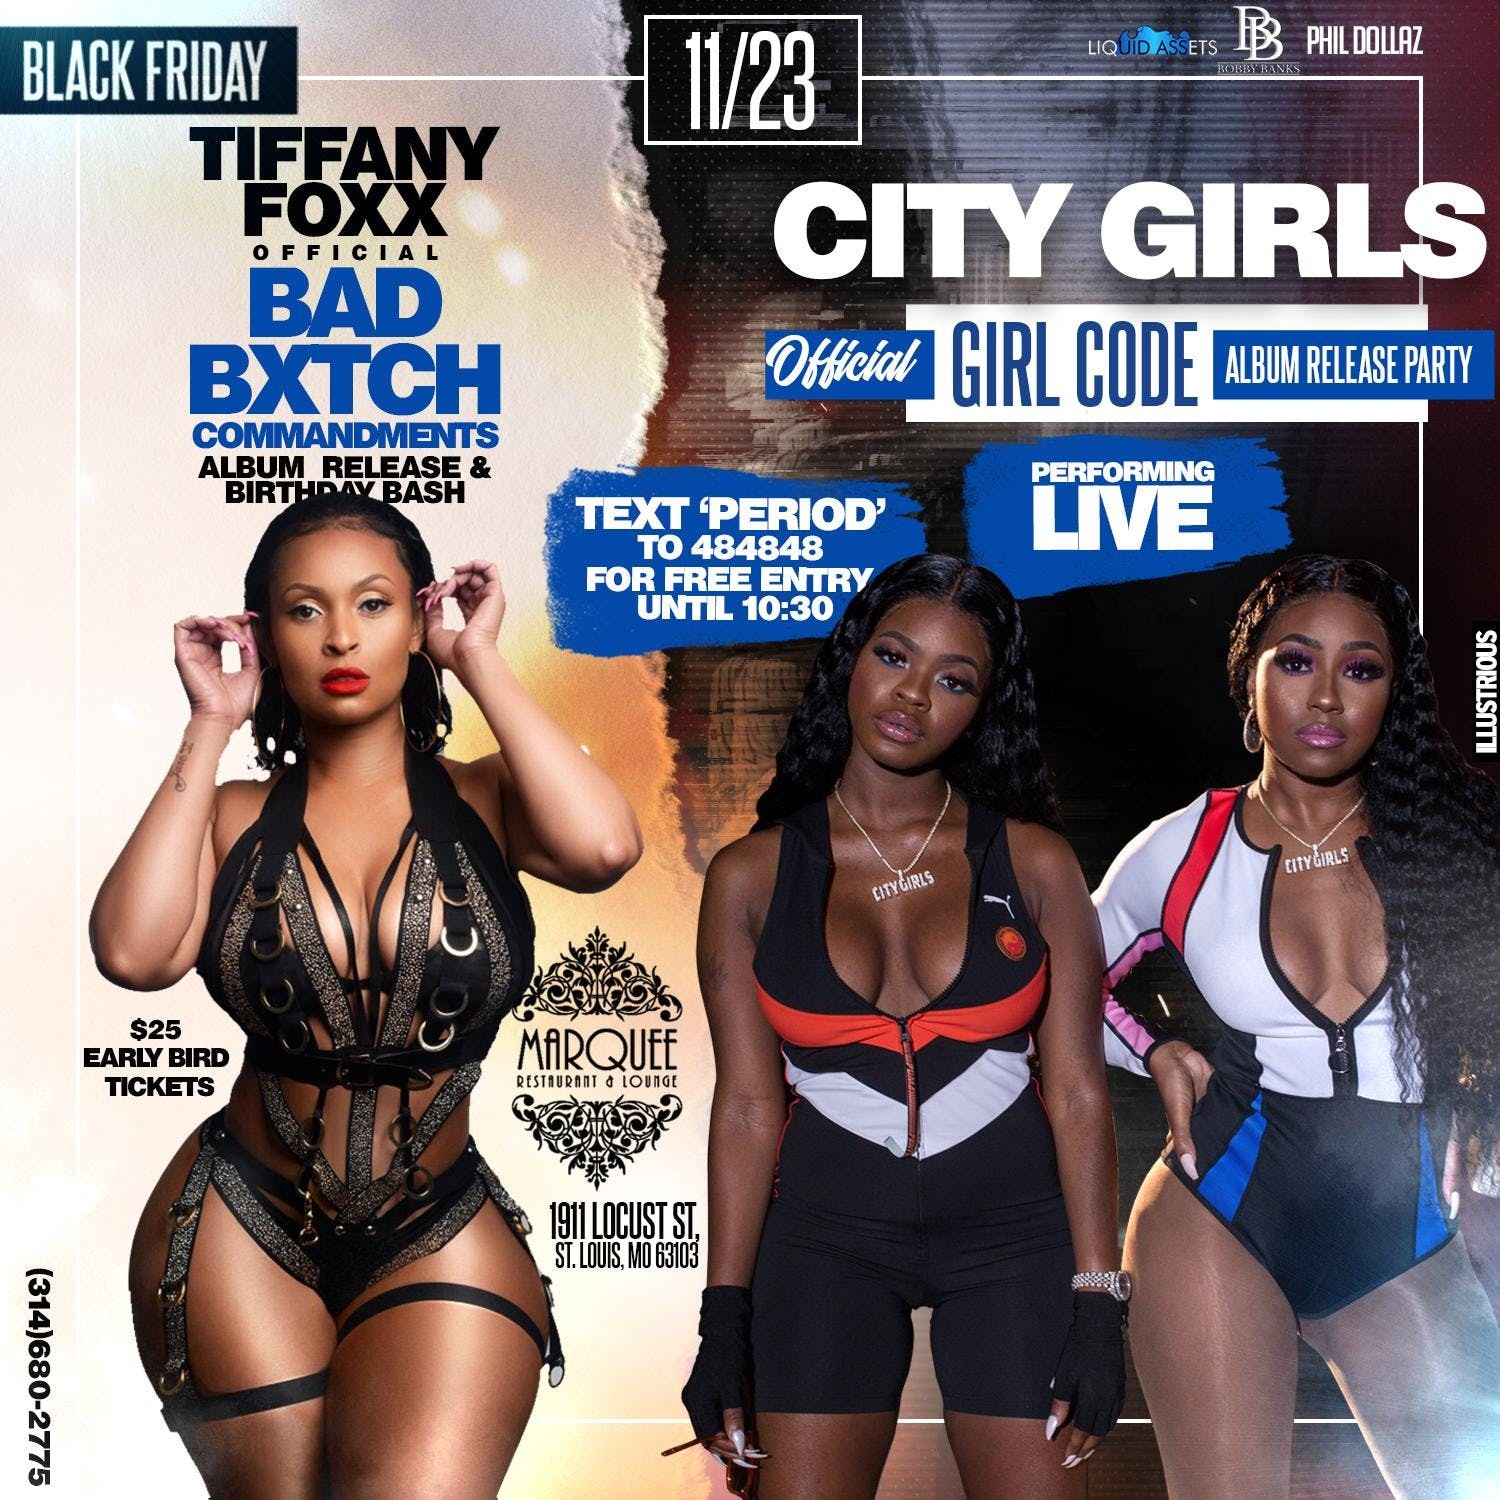 City Girls Album Release Party